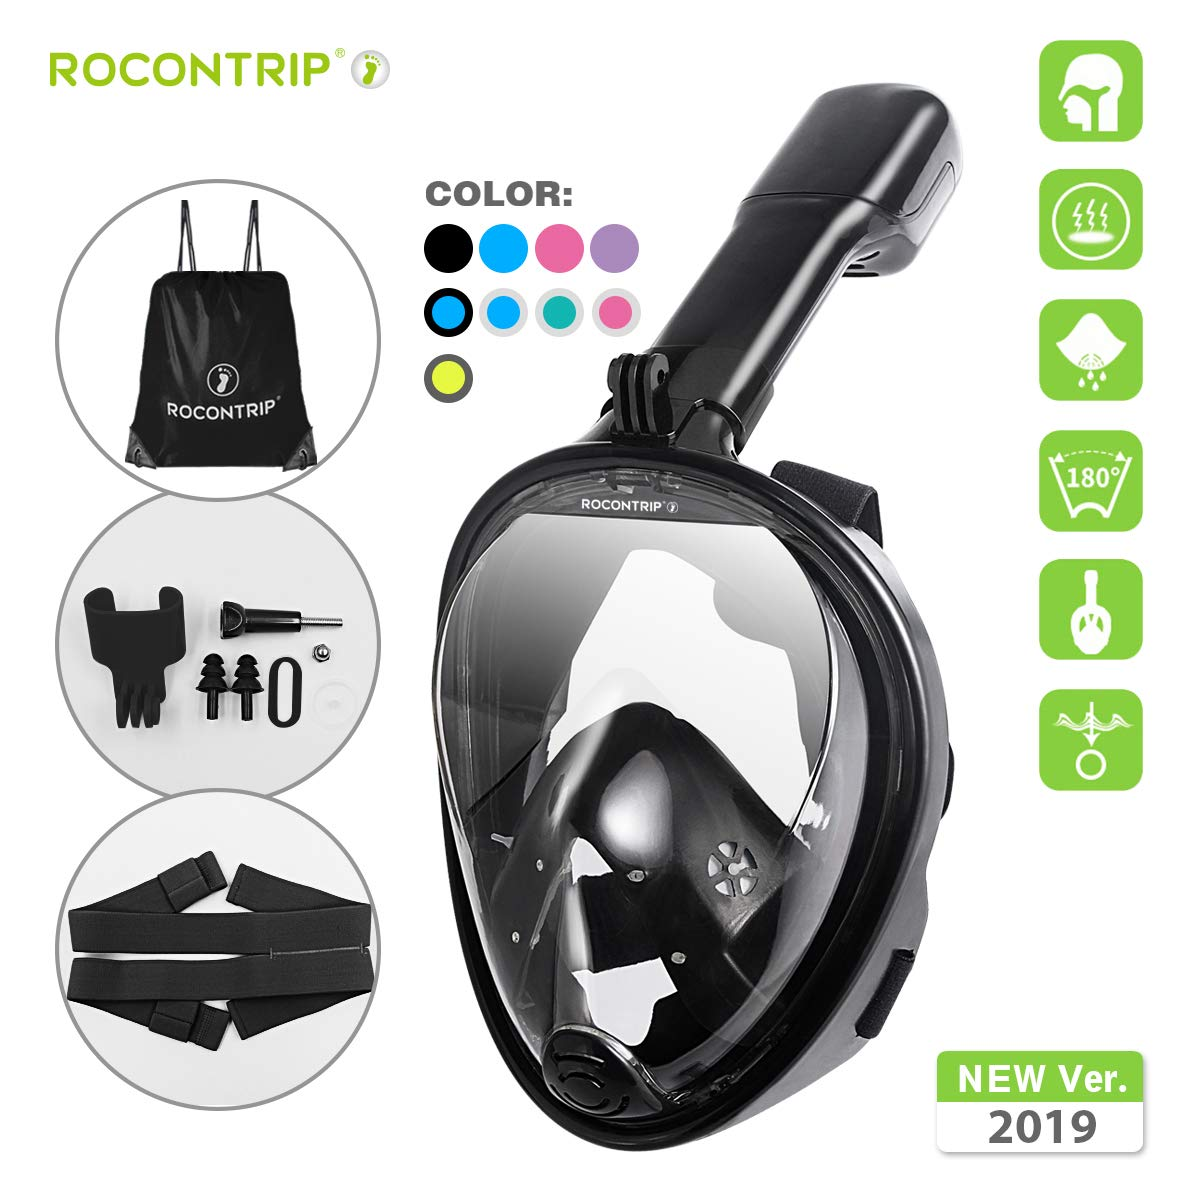 ROCONTRIP Full Face Snorkel Mask, Free Breathing 180° Panoramic View Diving Mask, Anti-Fog Anti-Leak and Adjustable Head Strap Snorkeling Mask for Men Women Adult (Black, S/M) by ROCONTRIP